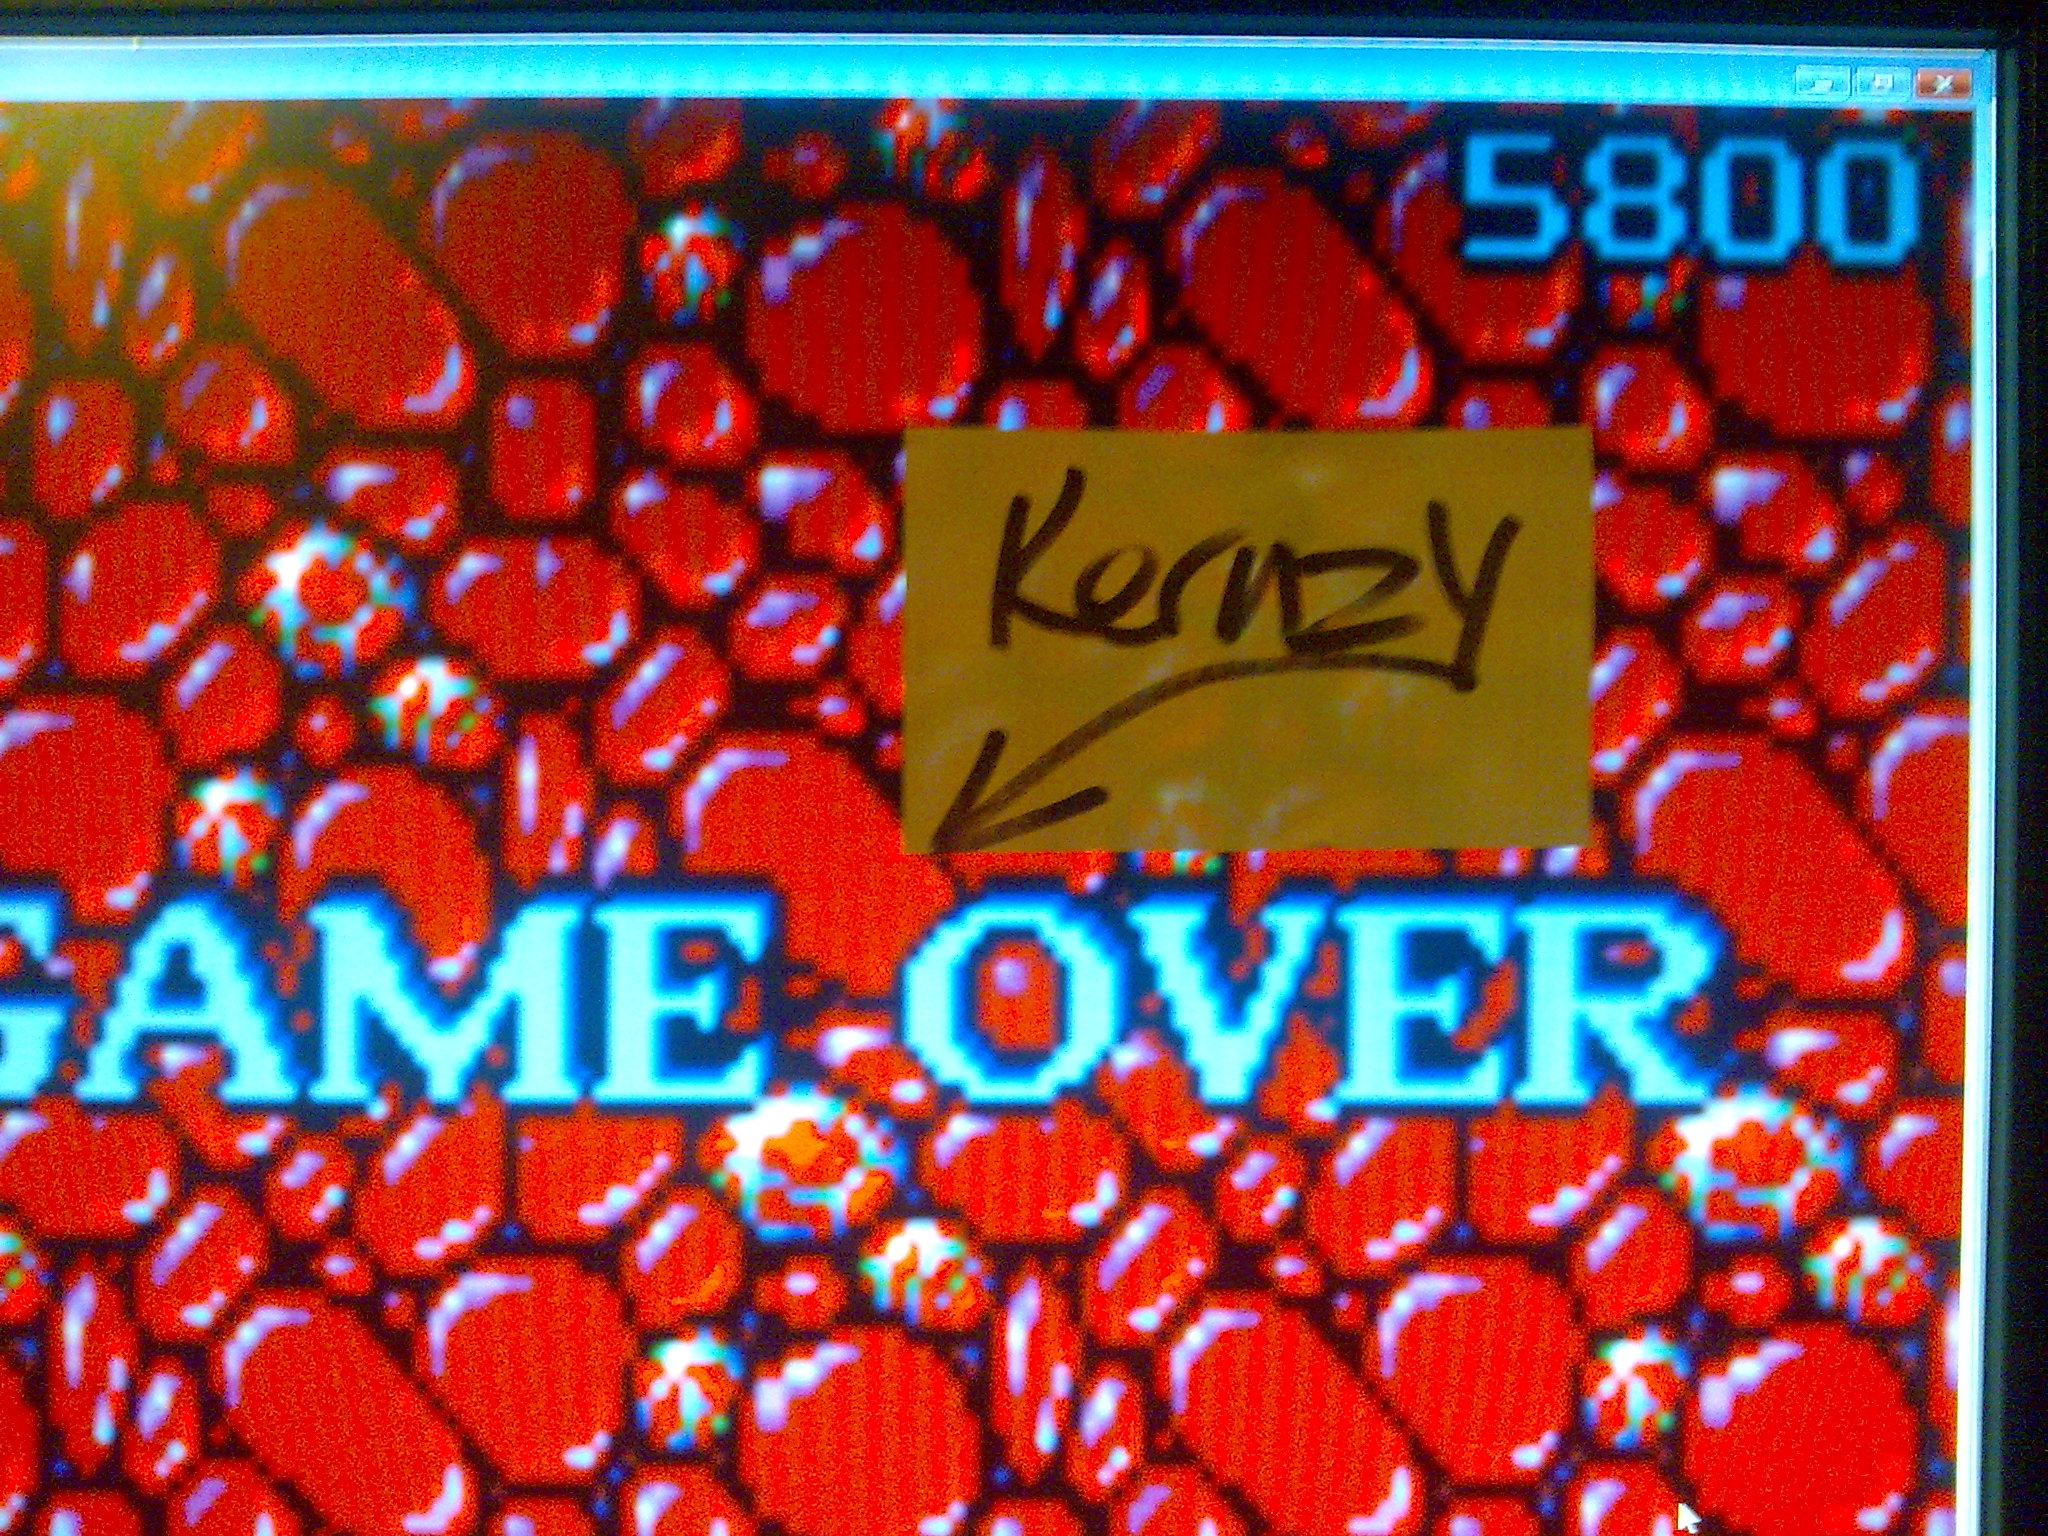 kernzy: Bubble Trouble (Atari Lynx Emulated) 5,800 points on 2014-10-15 23:34:08